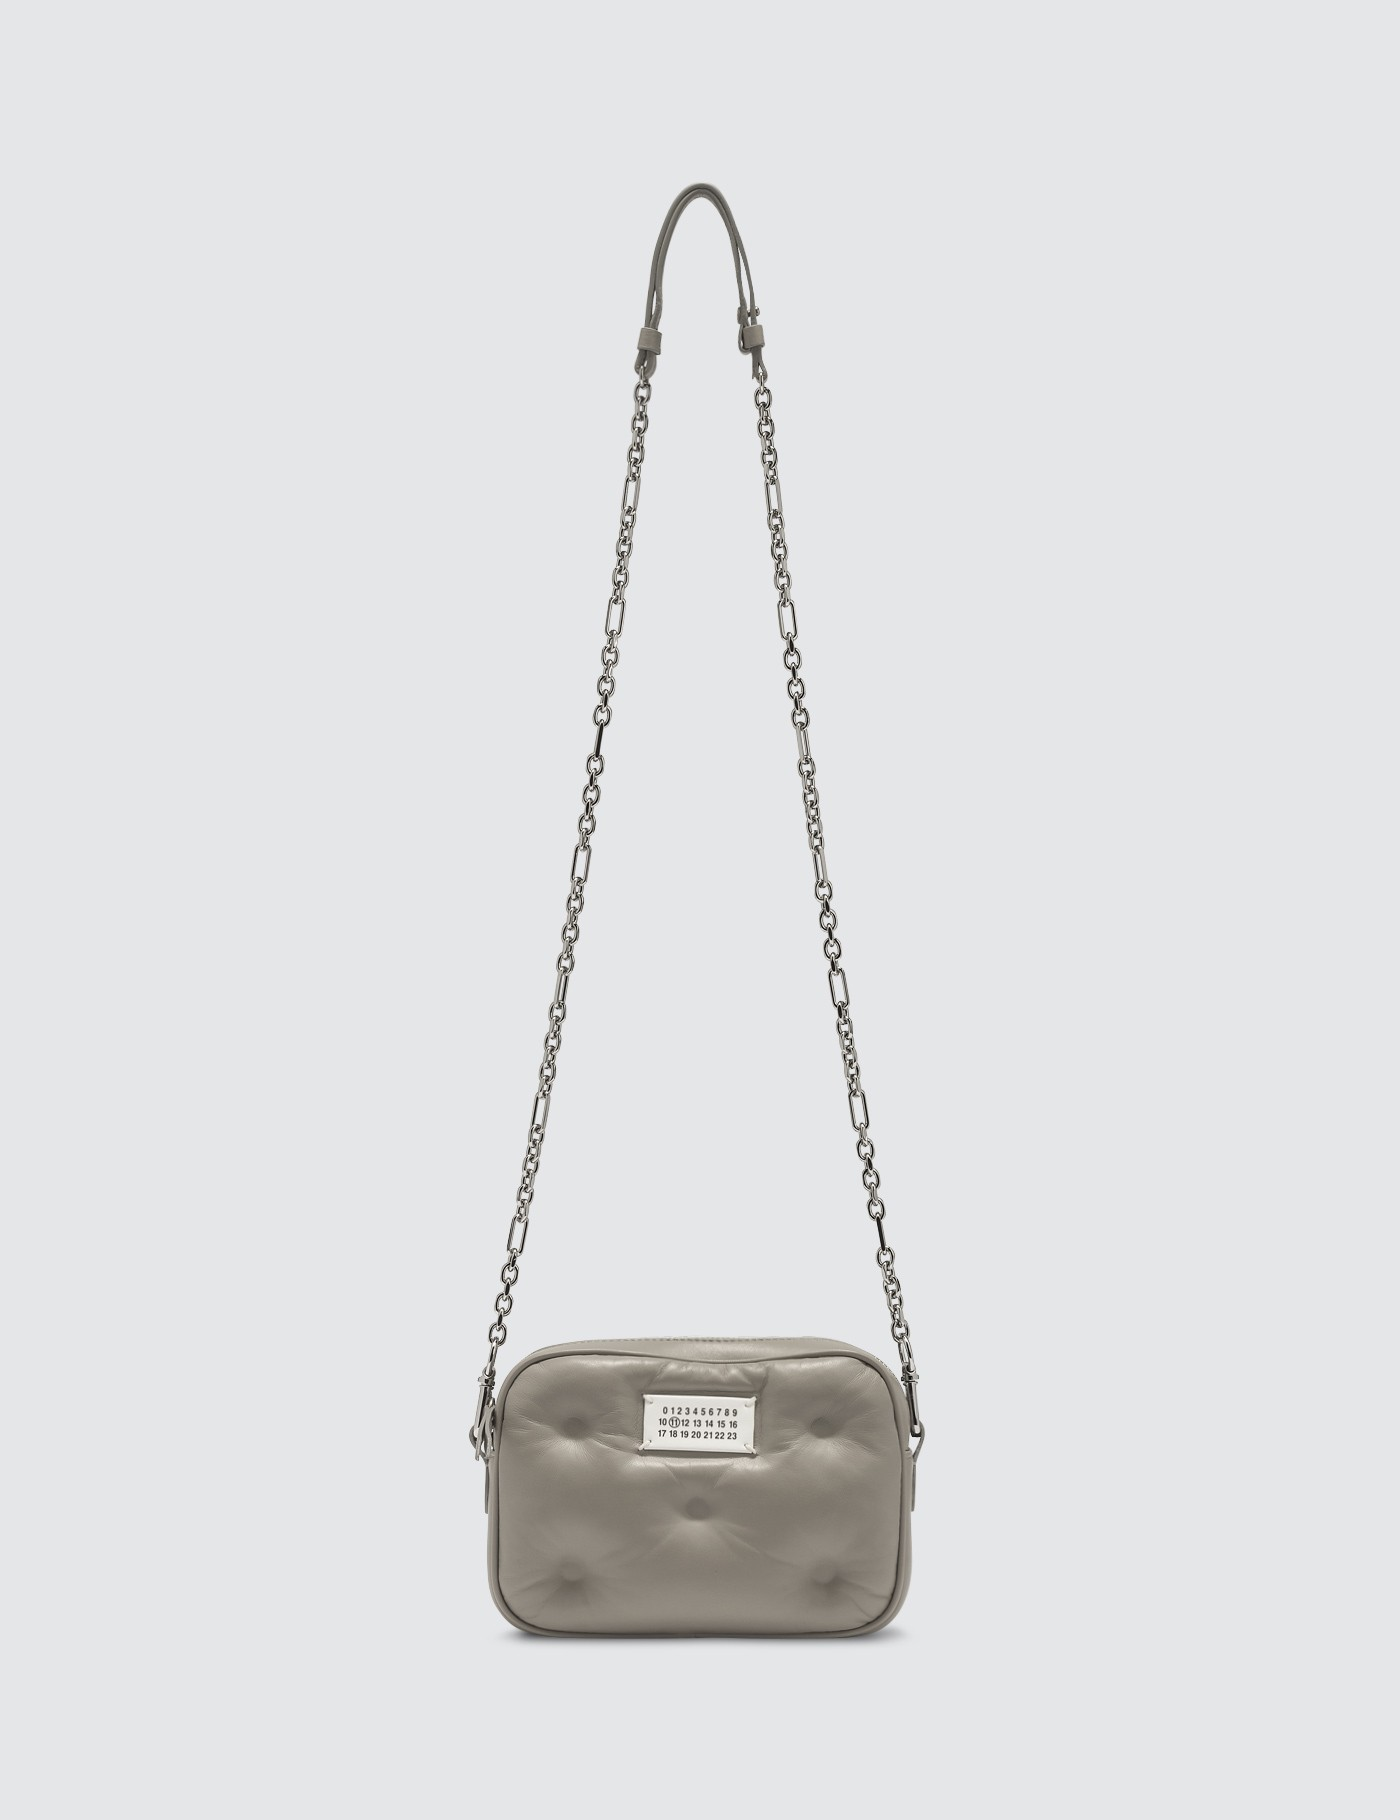 Maison Margiela Glam Jam Crossbody Bag